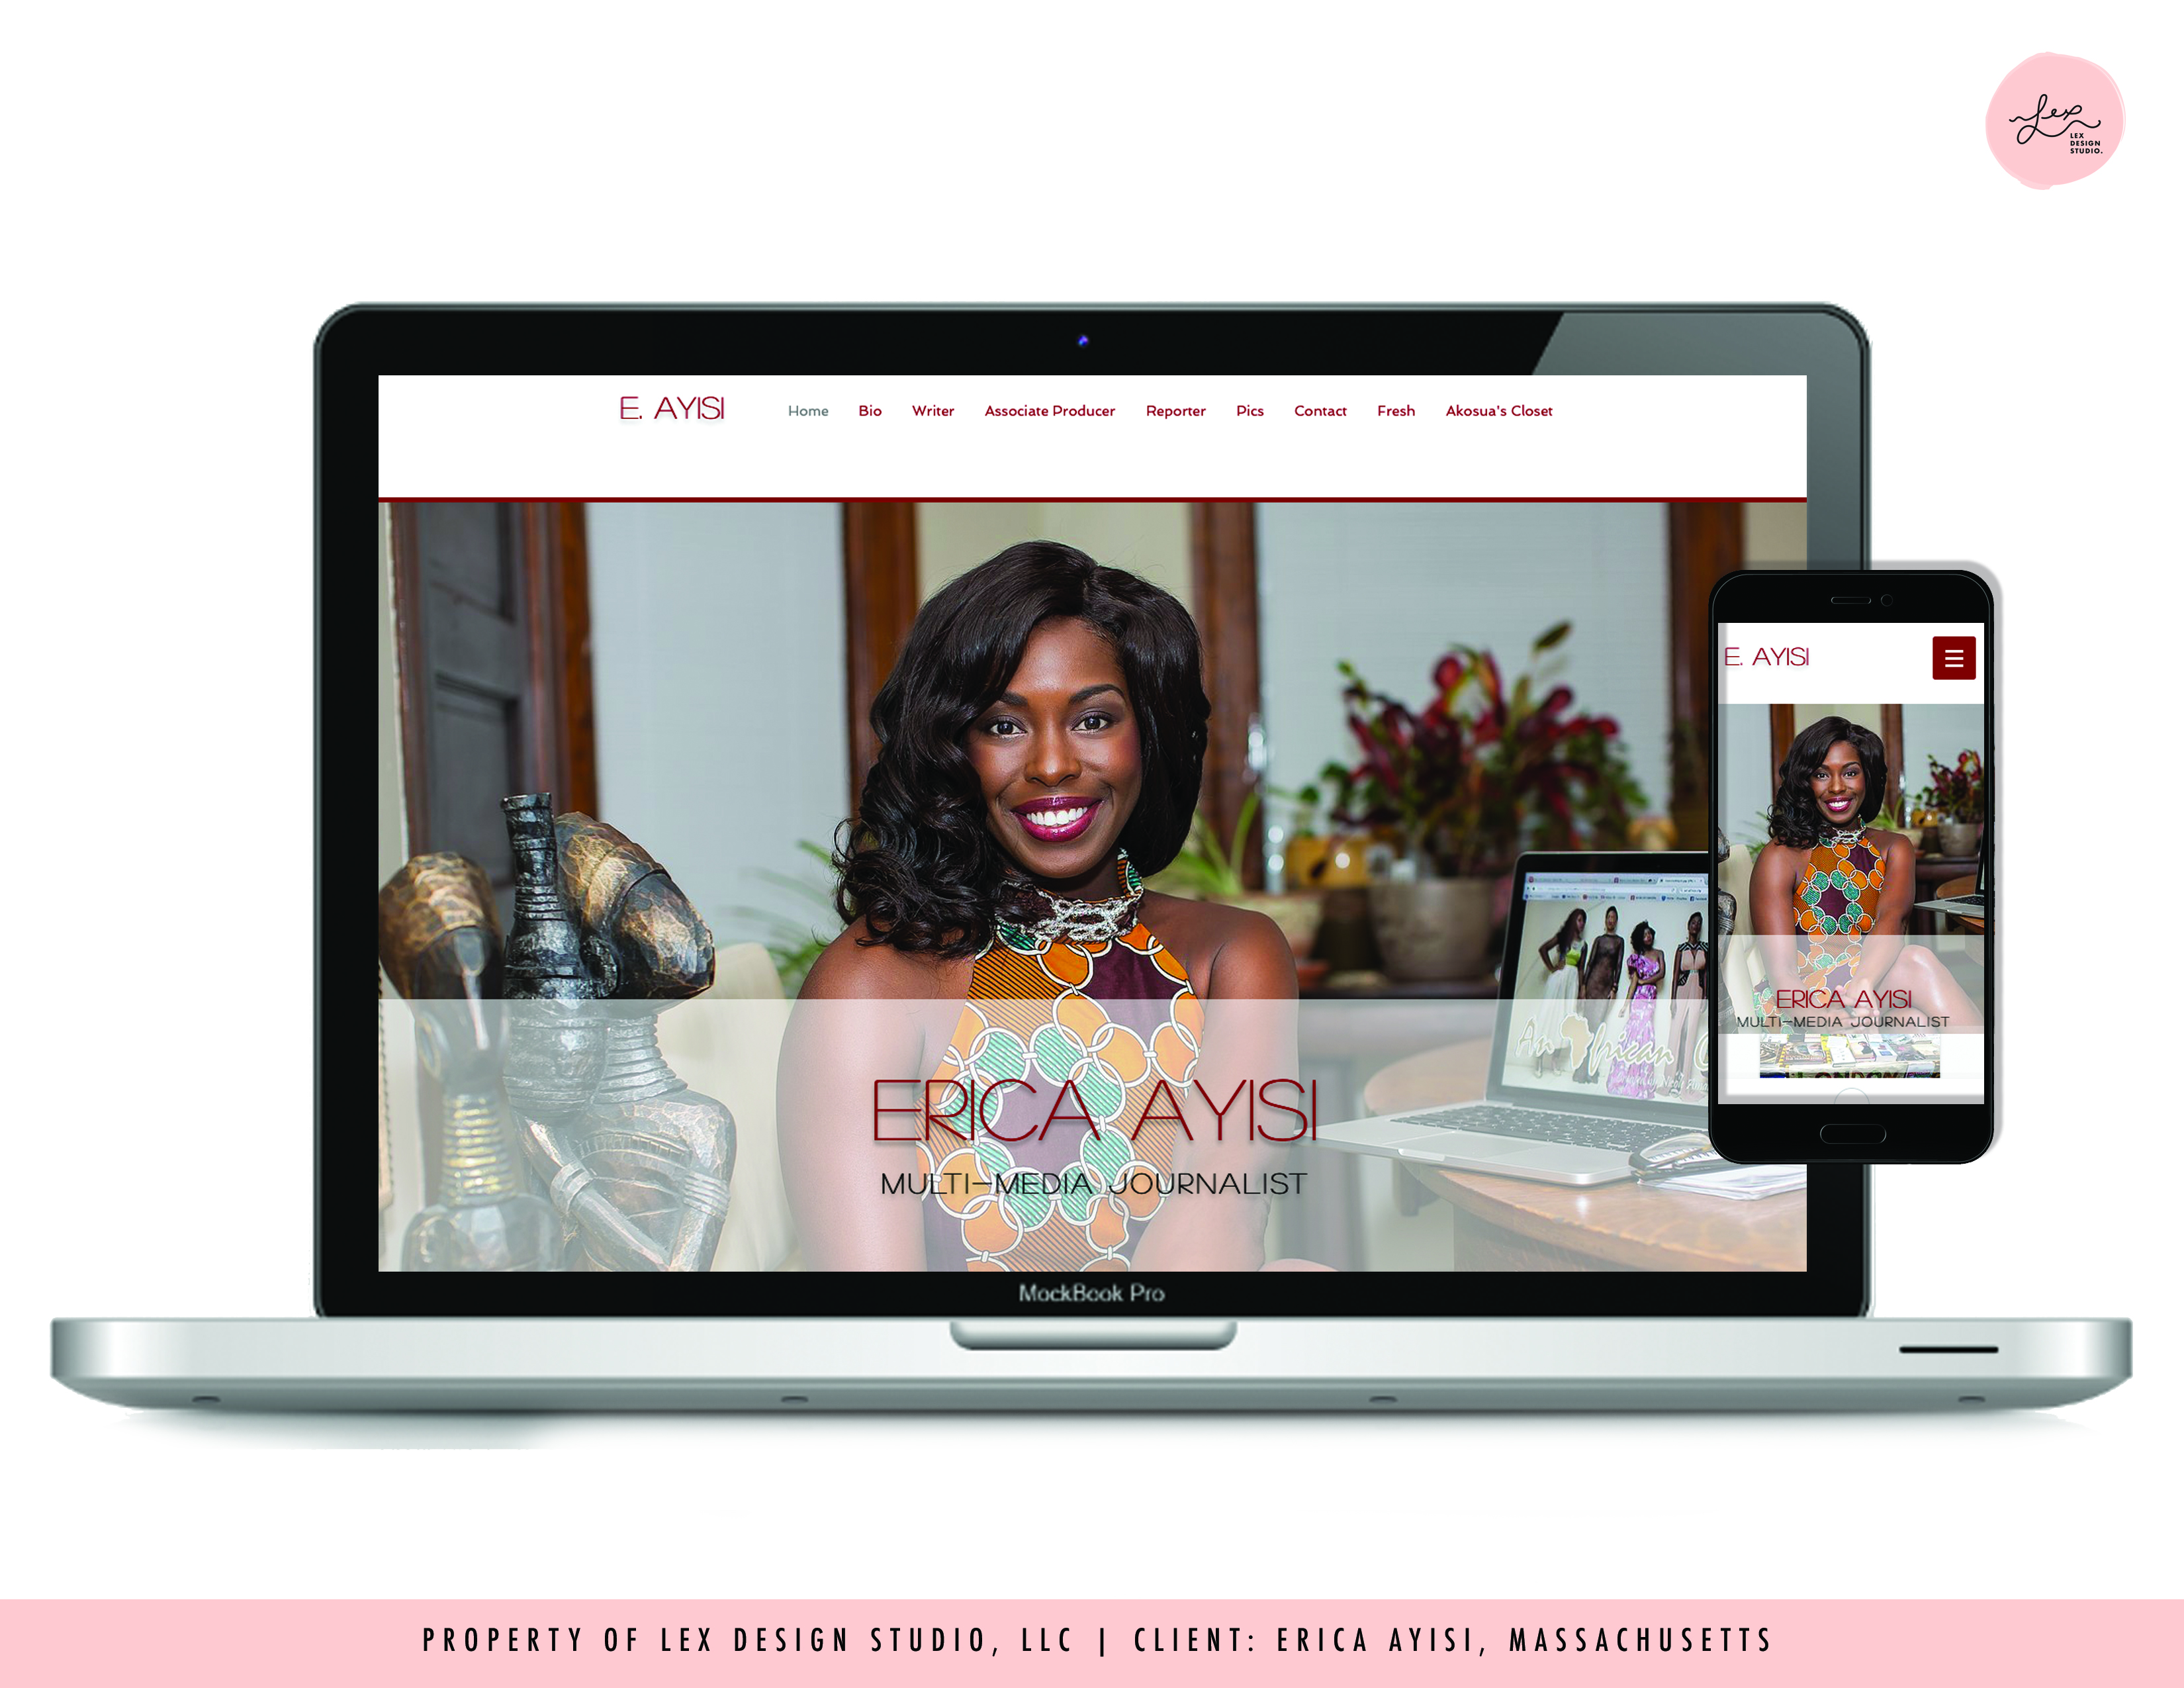 Website Design - Erica Ayisi